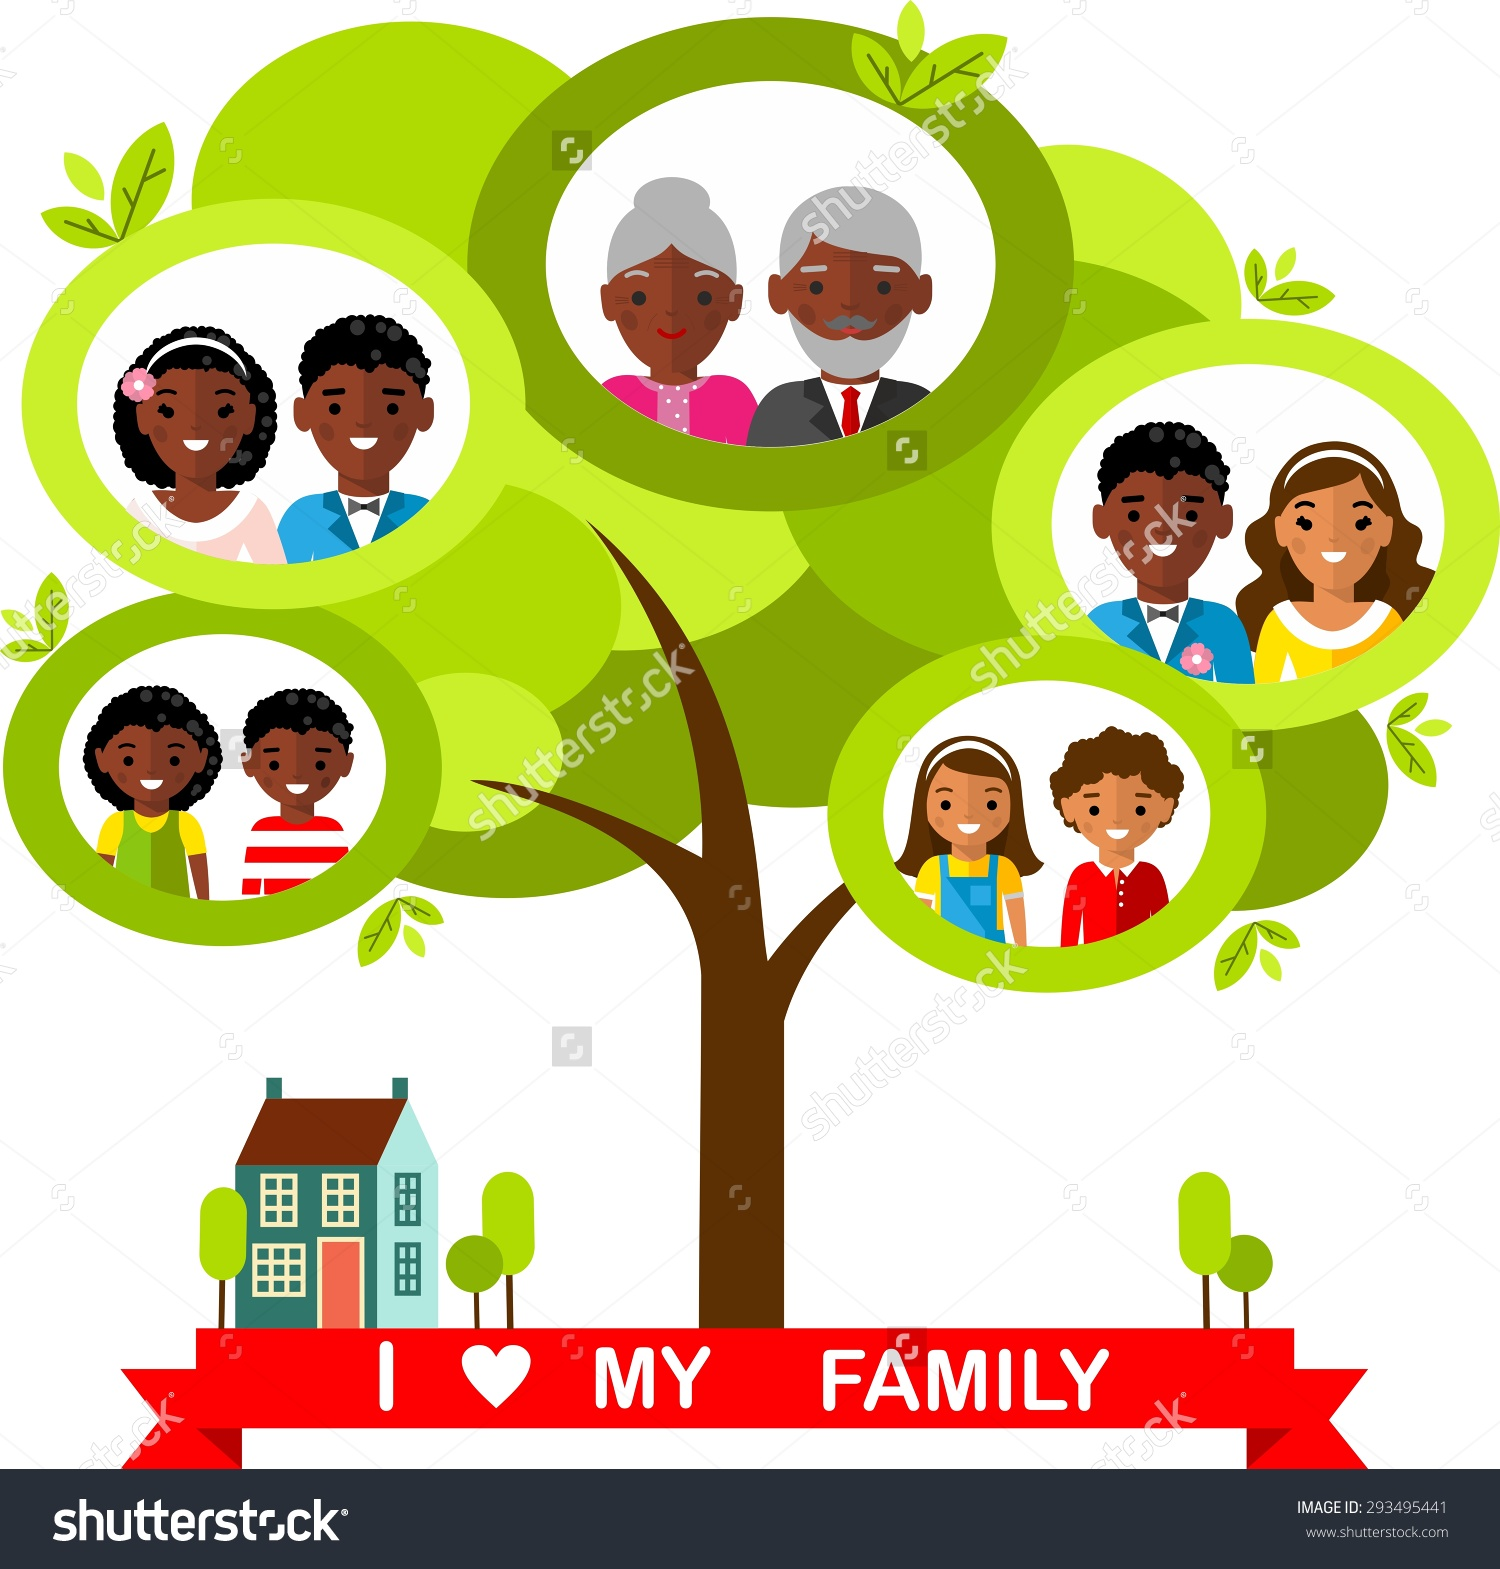 Family Of 5 Clipart Free Download Best Family Of 5 Clipart On